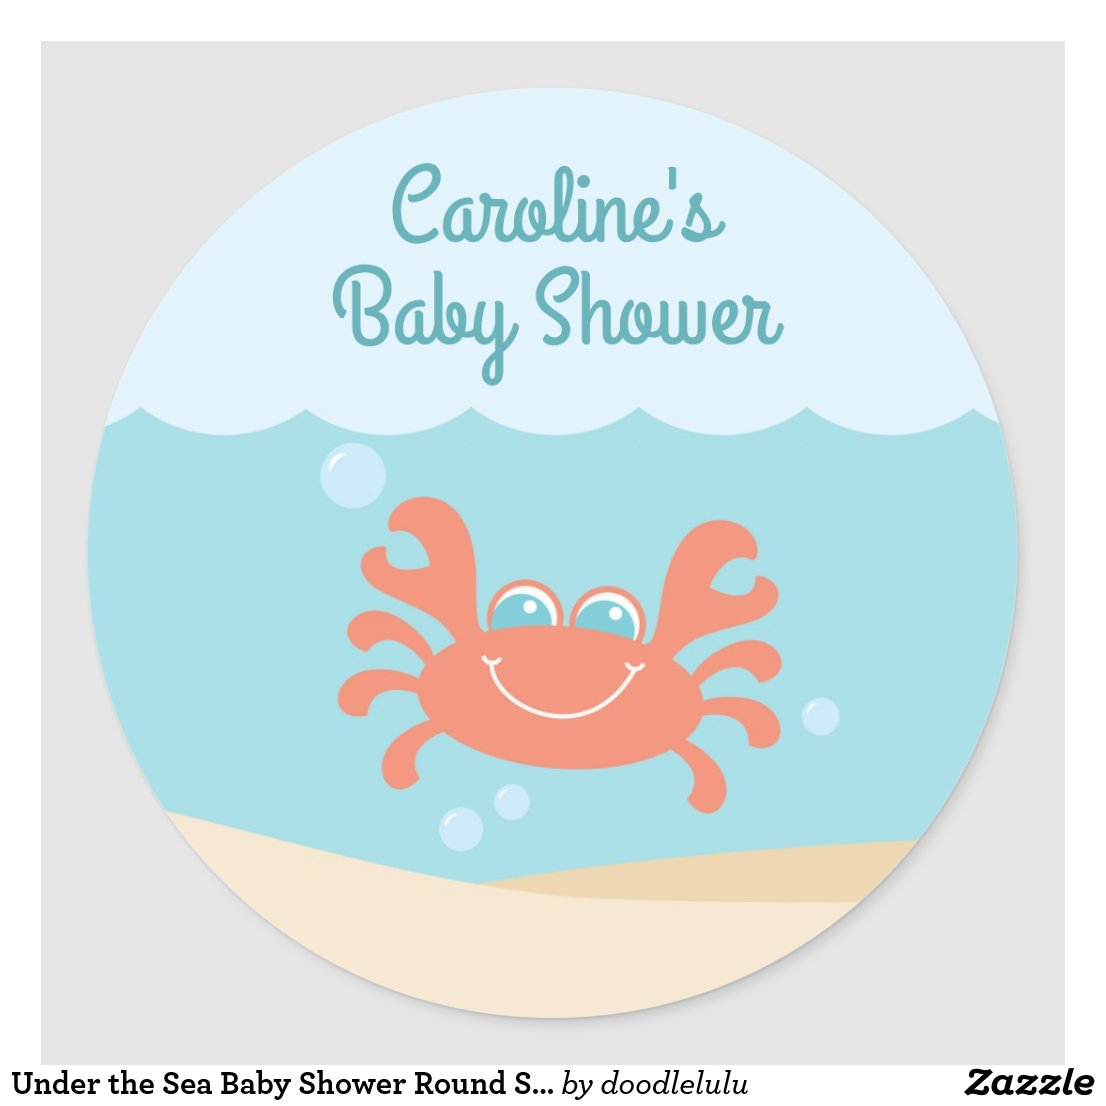 Under the Sea Baby Shower Round Sticker